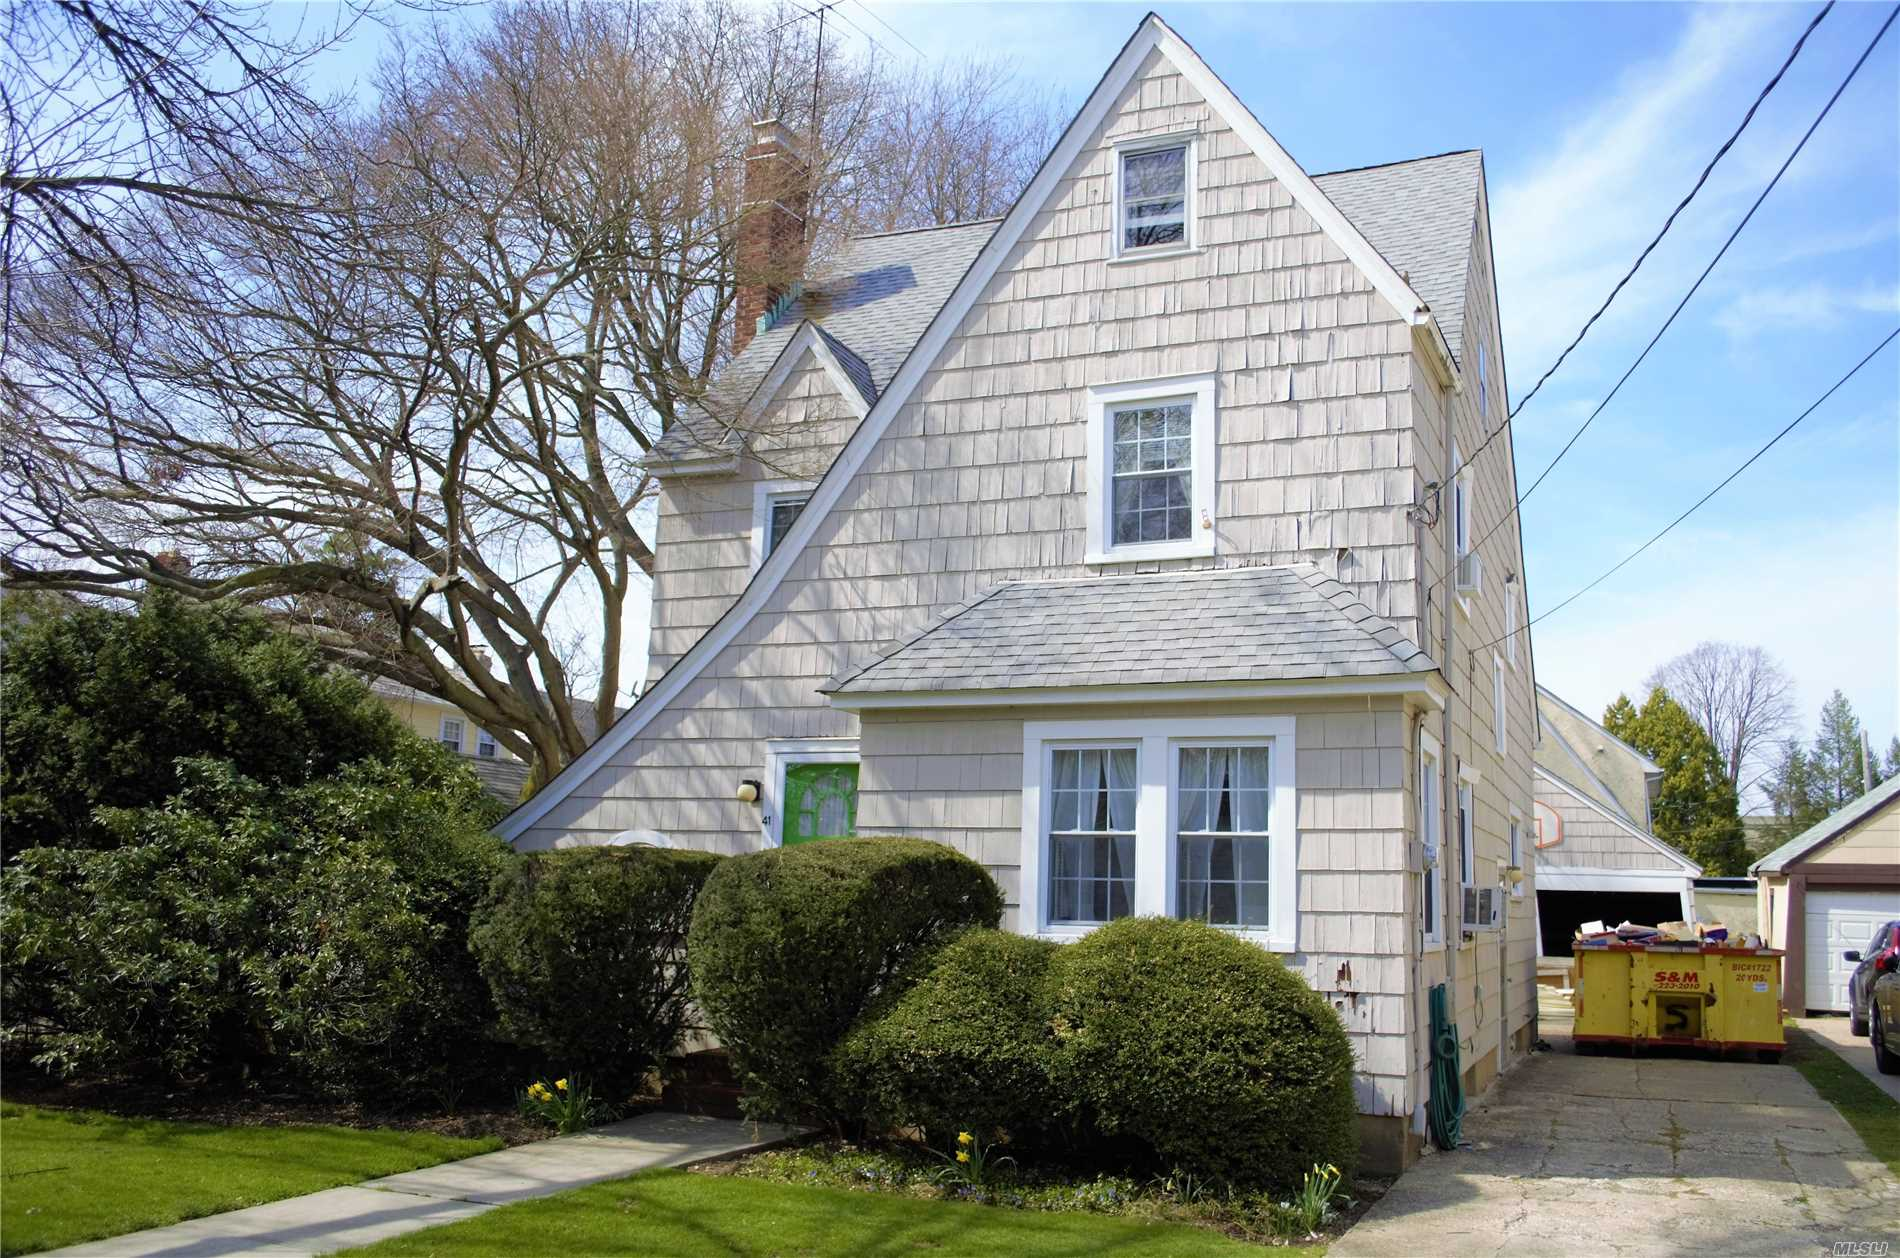 Charming Colonial. 4 Bedrooms. 1.5 Baths. Office. Formal Dr. 50x100 Lot. Large Attic, 4th Bedroom. 2 Patios, Front And Back. 2 Car Garage. Short Walking Distance To Hofstra University. House Need TLC. Great Potential. Close To All.